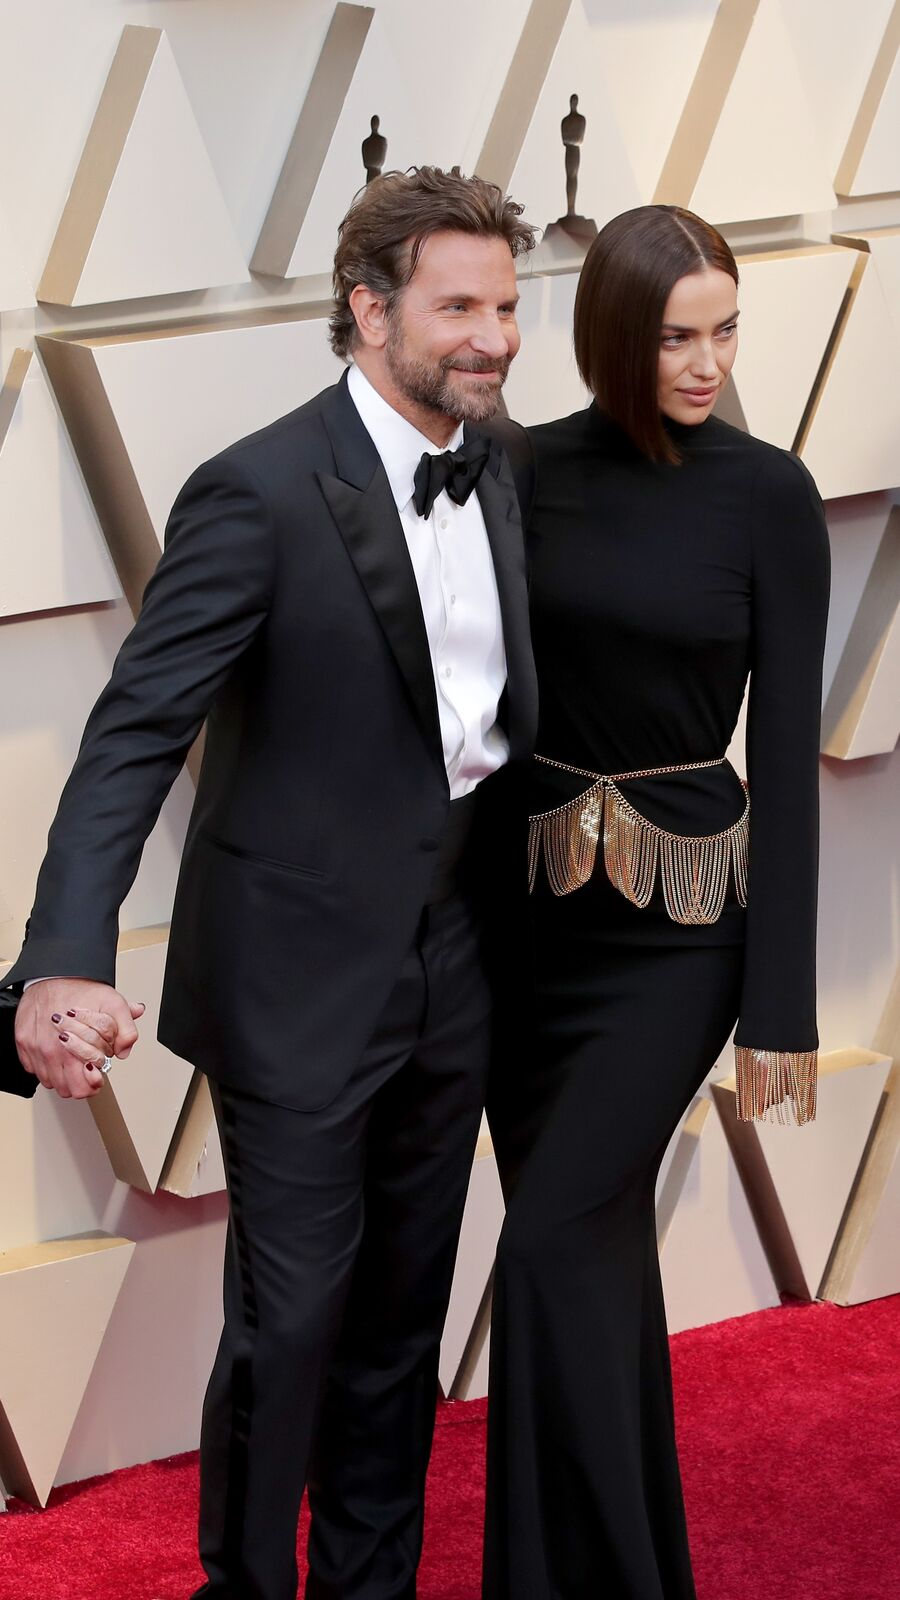 Bradley Cooper and Irina Shayk attends the 91st Annual Academy Awards at Hollywood and Highland on February 24, 2019 | Photo: Getty Images